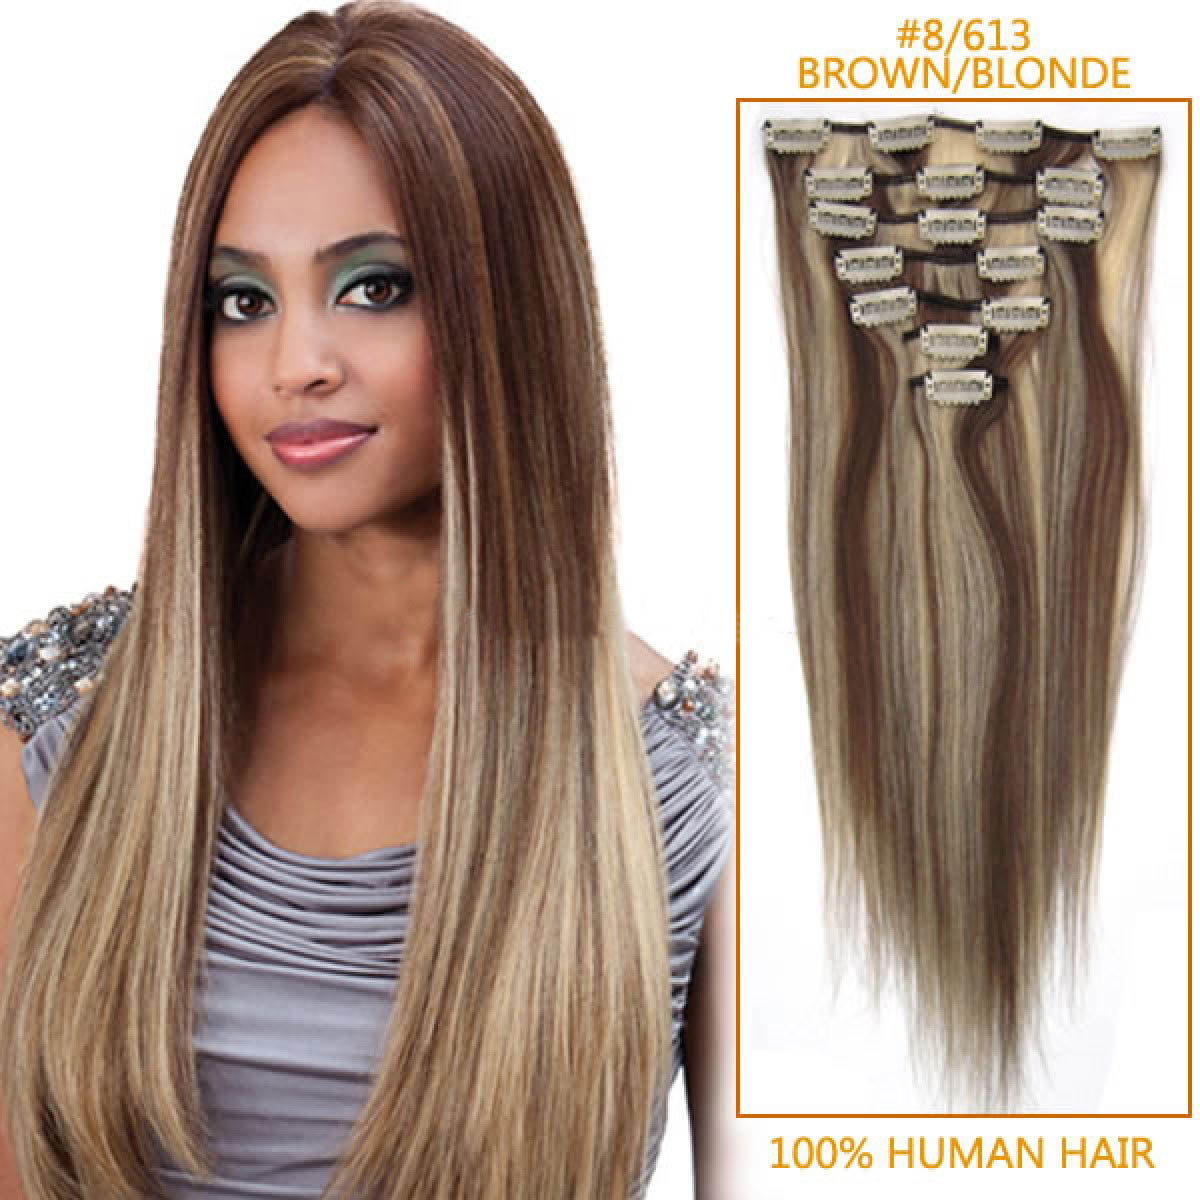 Blonde Hair Extensions For Sale Best Image Of Blonde Hair 2018